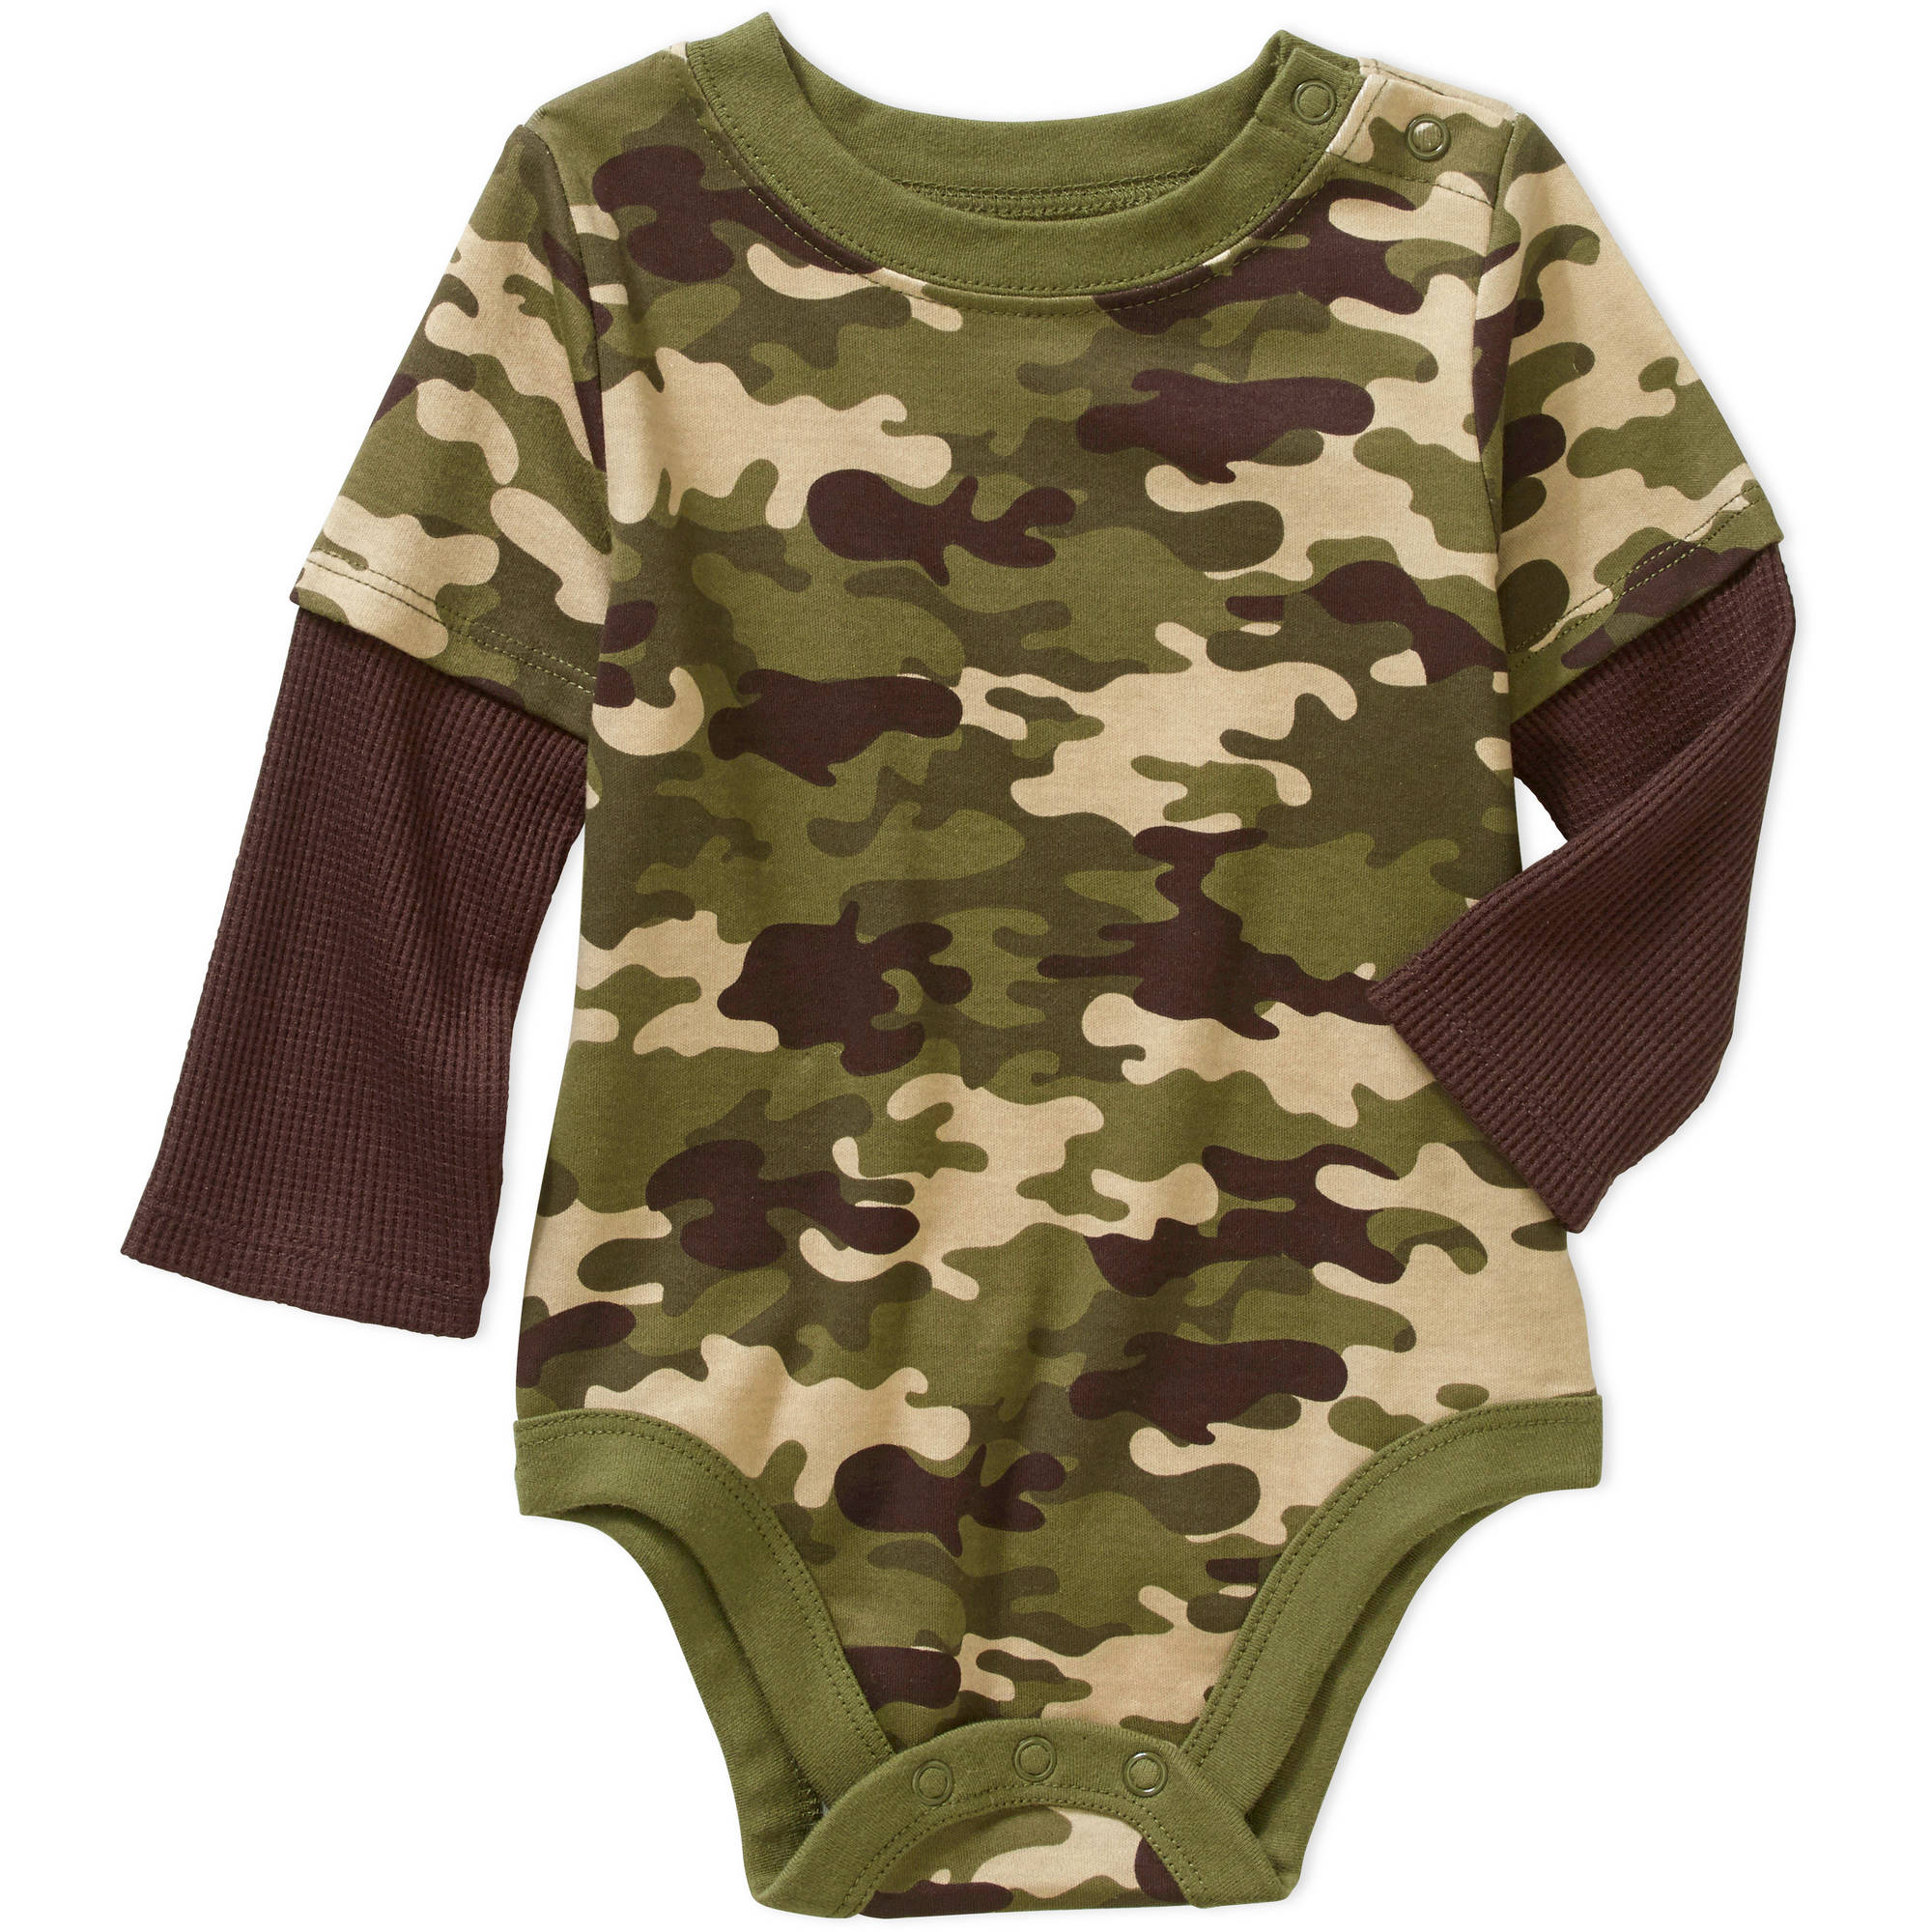 Garanimals Newborn Baby Boy Long Sleeve Hangdown Printed Bodysuit